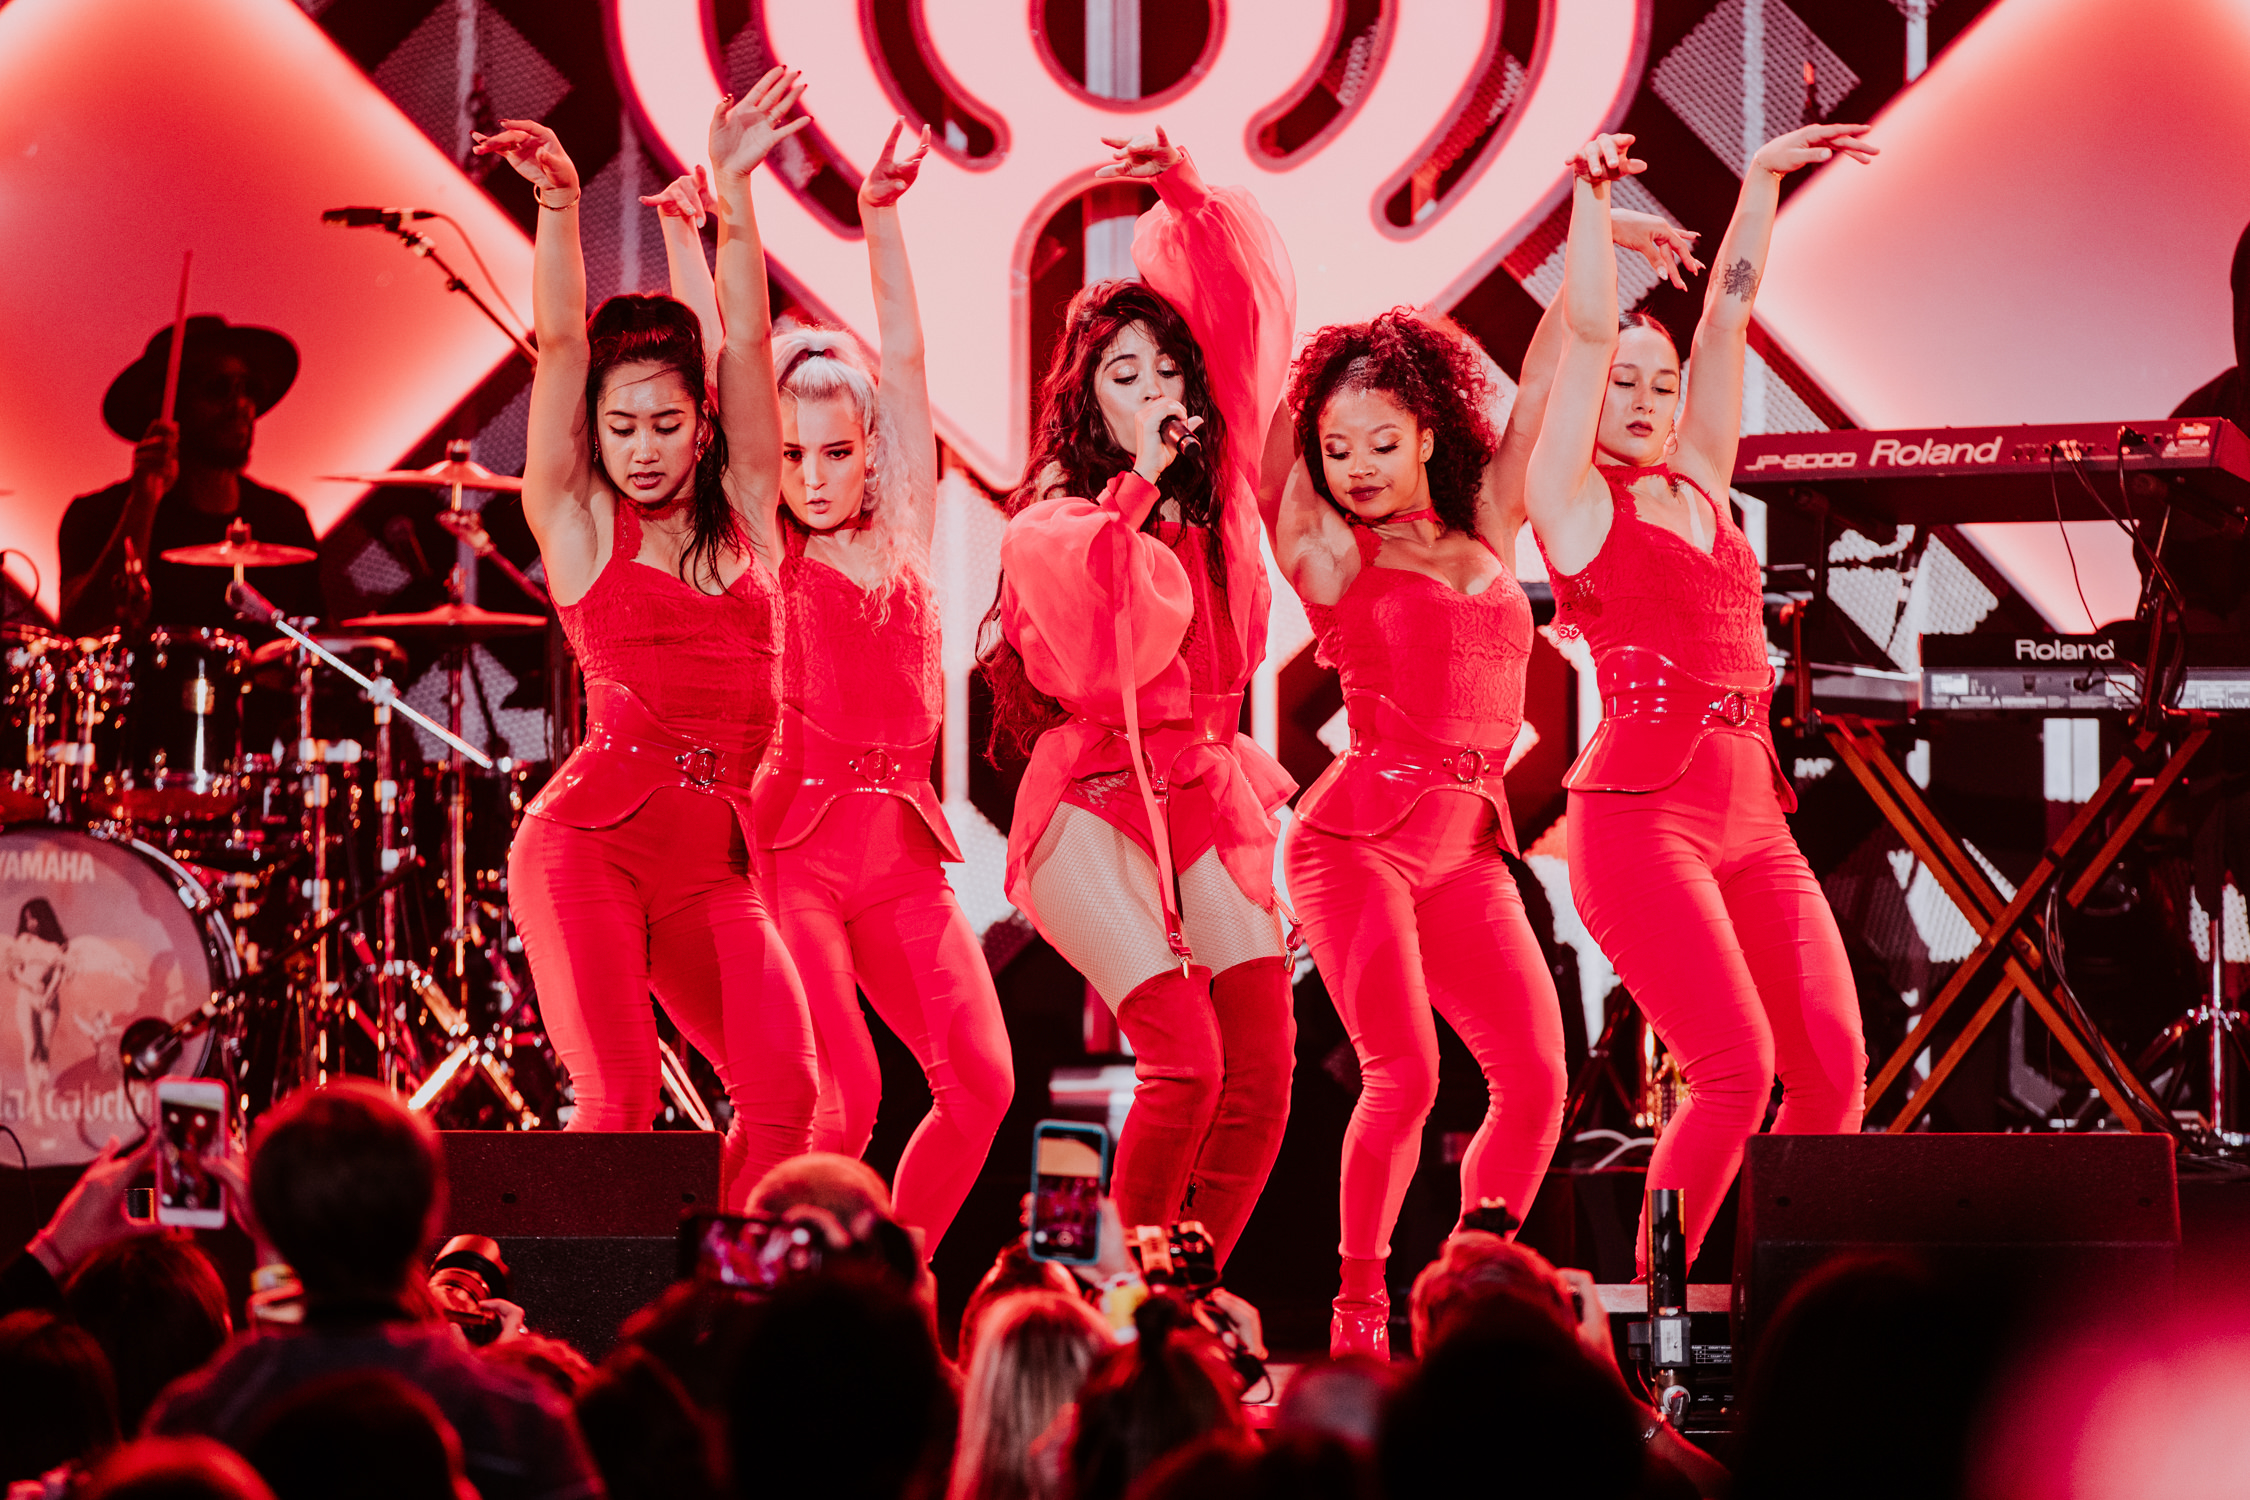 camila-cabello-dancers-red-outfits-AnnaLeeMedia